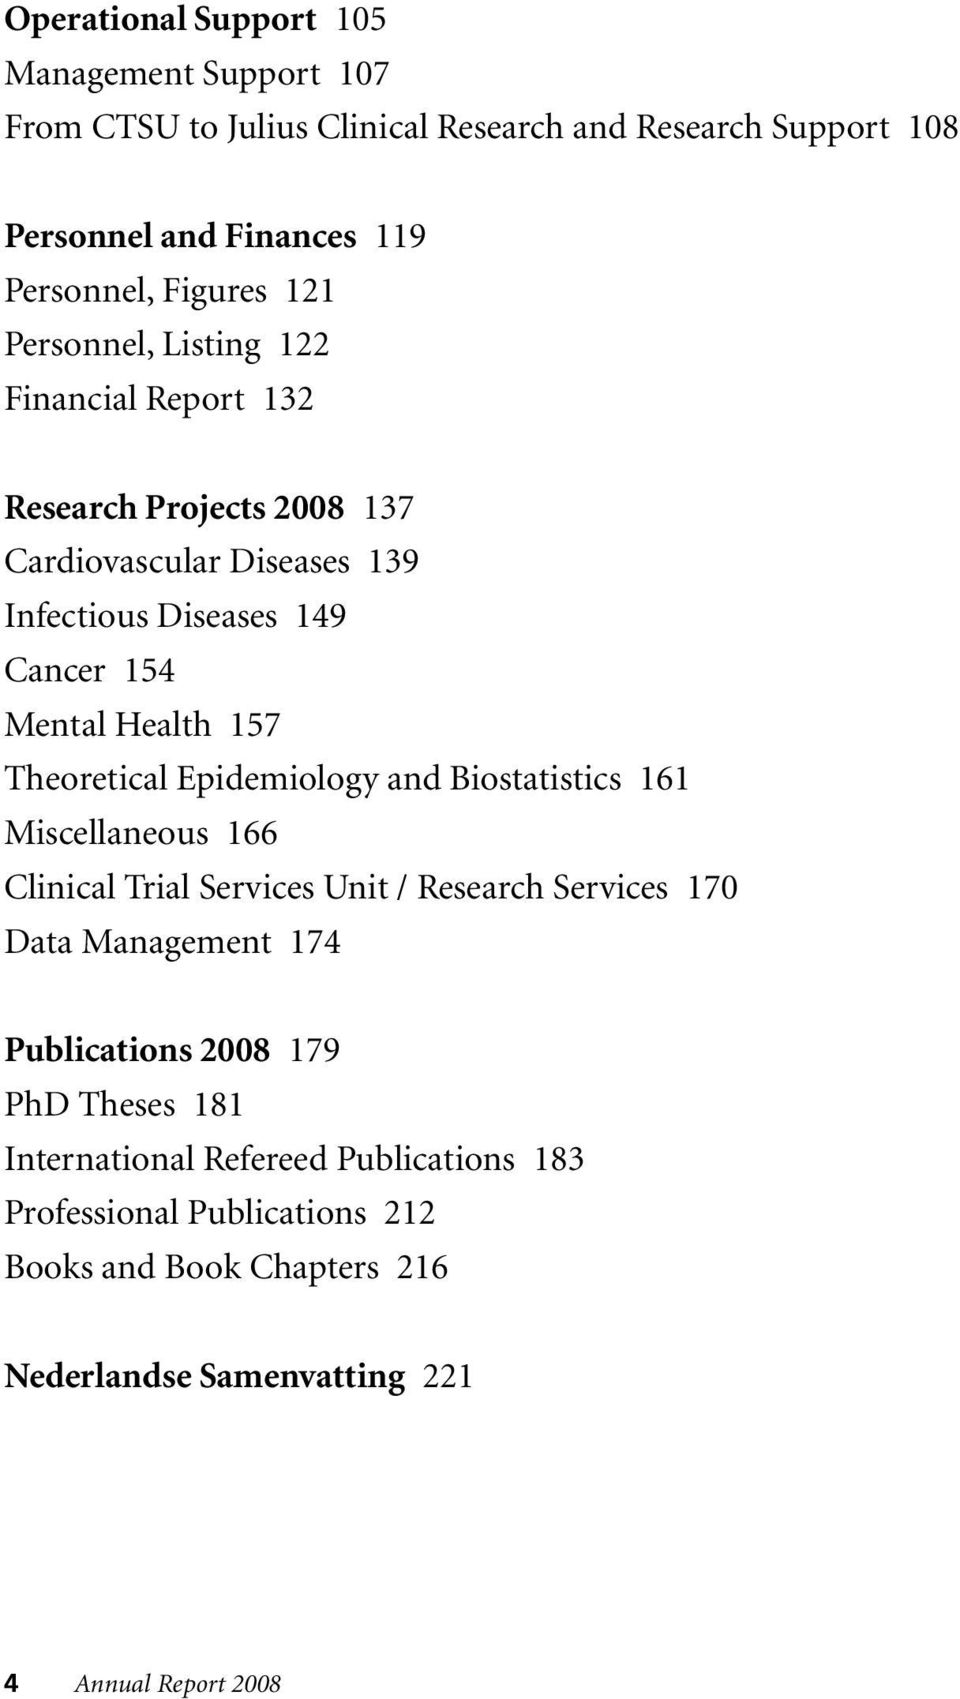 Theoretical Epidemiology and Biostatistics 161 Miscellaneous 166 Clinical Trial Services Unit / Research Services 170 Data Management 174 Publications 2008